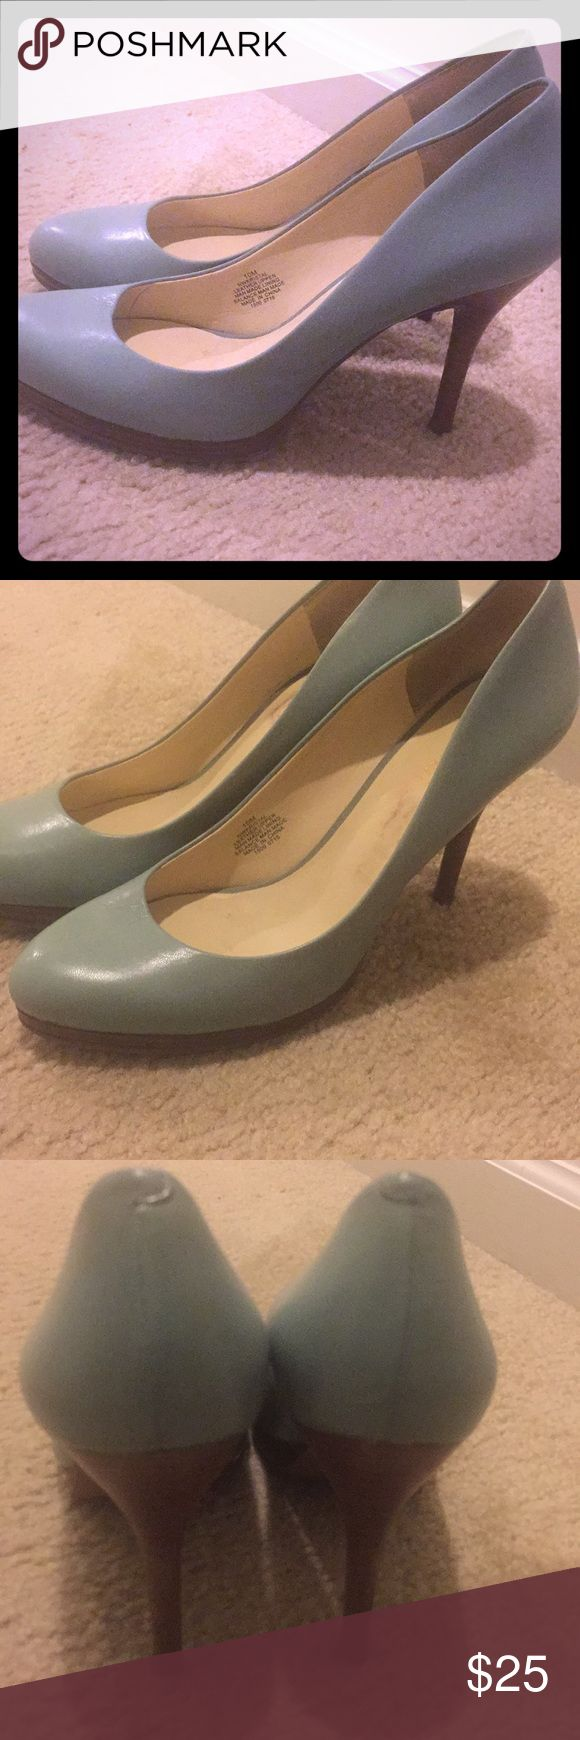 Nine West pump green size 10 for work or play Nine West pump green size 10 for work or play super comfortable can be worn with jeans, dress pants, skirts and dresses! Nine West Shoes Heels